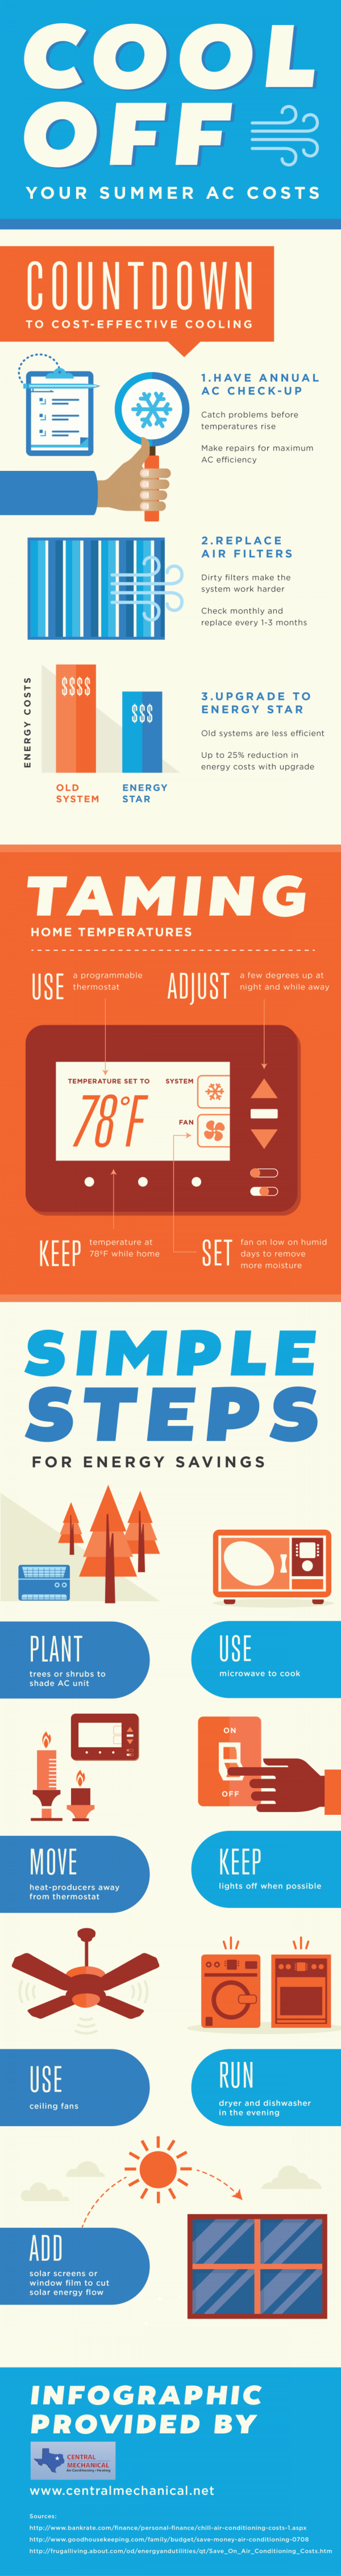 Cool Off Your Summer AC Costs Infographic